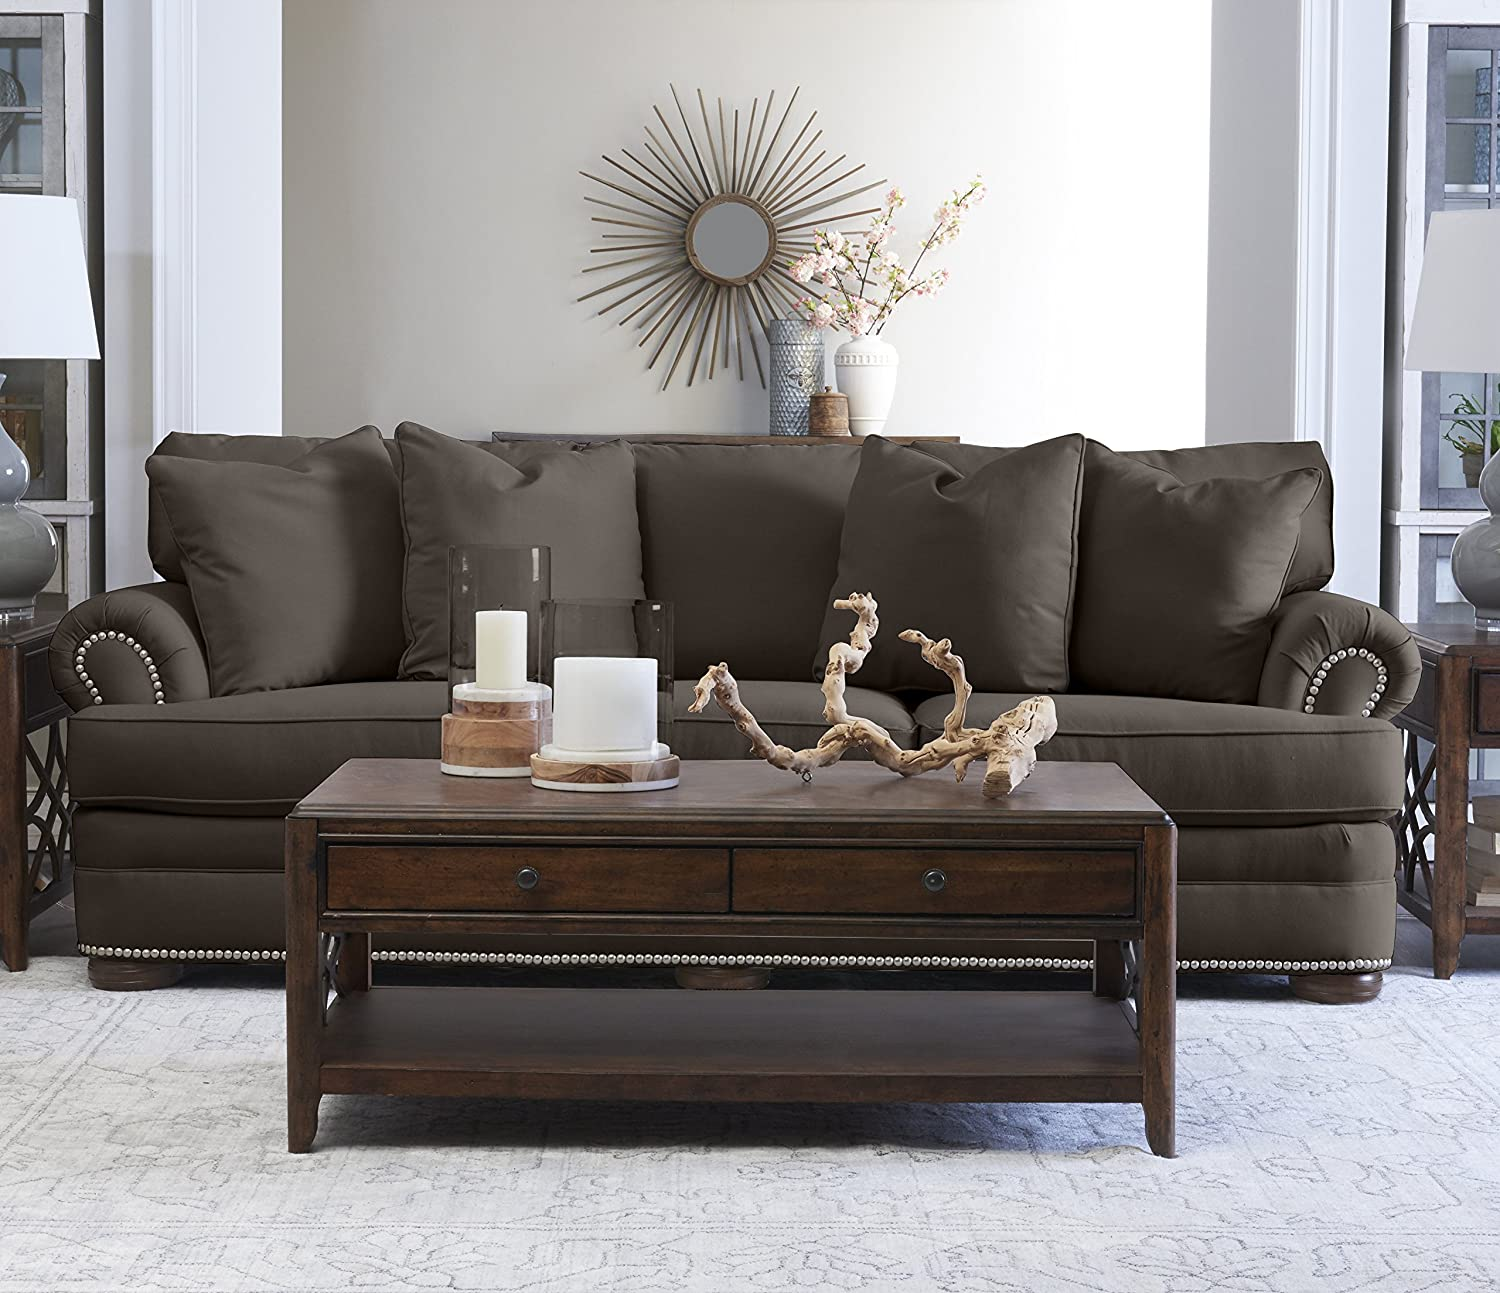 """Klaussner Home Furnishings Tilden Sofa with 4 Throw Pillows, 45""""L x 97""""W x 37""""H, Pewter"""